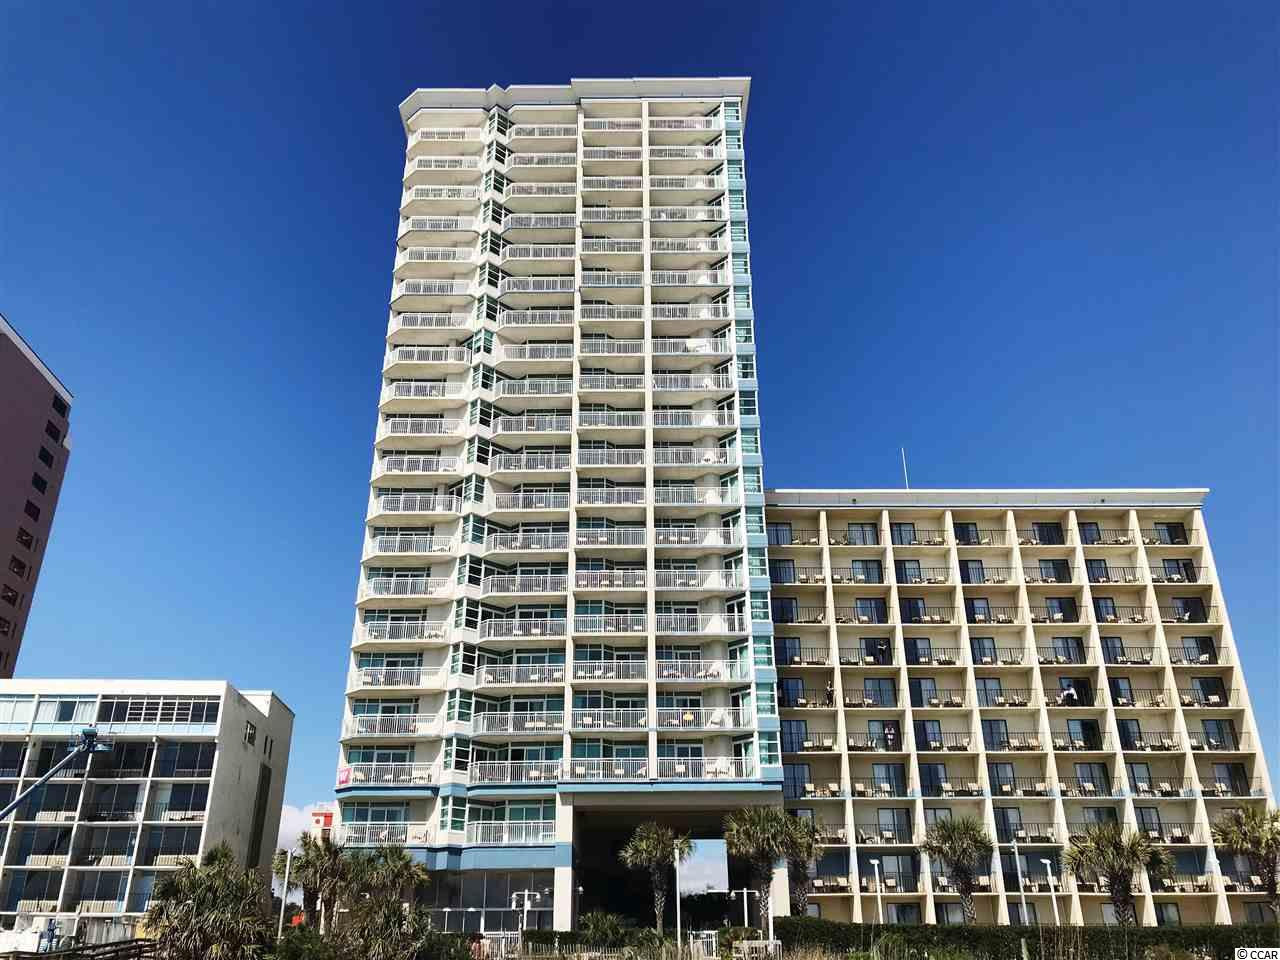 Welcome to The Carolinian Beach Resort.  Located in the heart of the downtown area. This location is second to none.  This upscale turn key condominium is only one of twenty oceanfront TRUE one bedroom units and comes fully furnished. Some recent upgrades include a brand new HVAC less than one year ago, New Refrigerator, Microwave, Granite Counter Tops, Sofa, Hallway Sconces, and carpet in the living room and bedroom.  Brand new stove June of 2019 as well as a brand new stack washer/dryer in August 2019. The large bedroom offers very nice privacy and connects to the Jack N Jill bathroom. A ceiling fan also helps cool things down on those hot summer nights.  The Carolinian amenities include multiple pools, multiple hot tubs, lazy river and Fitness Center.  Make sure this condo is on your viewing list.